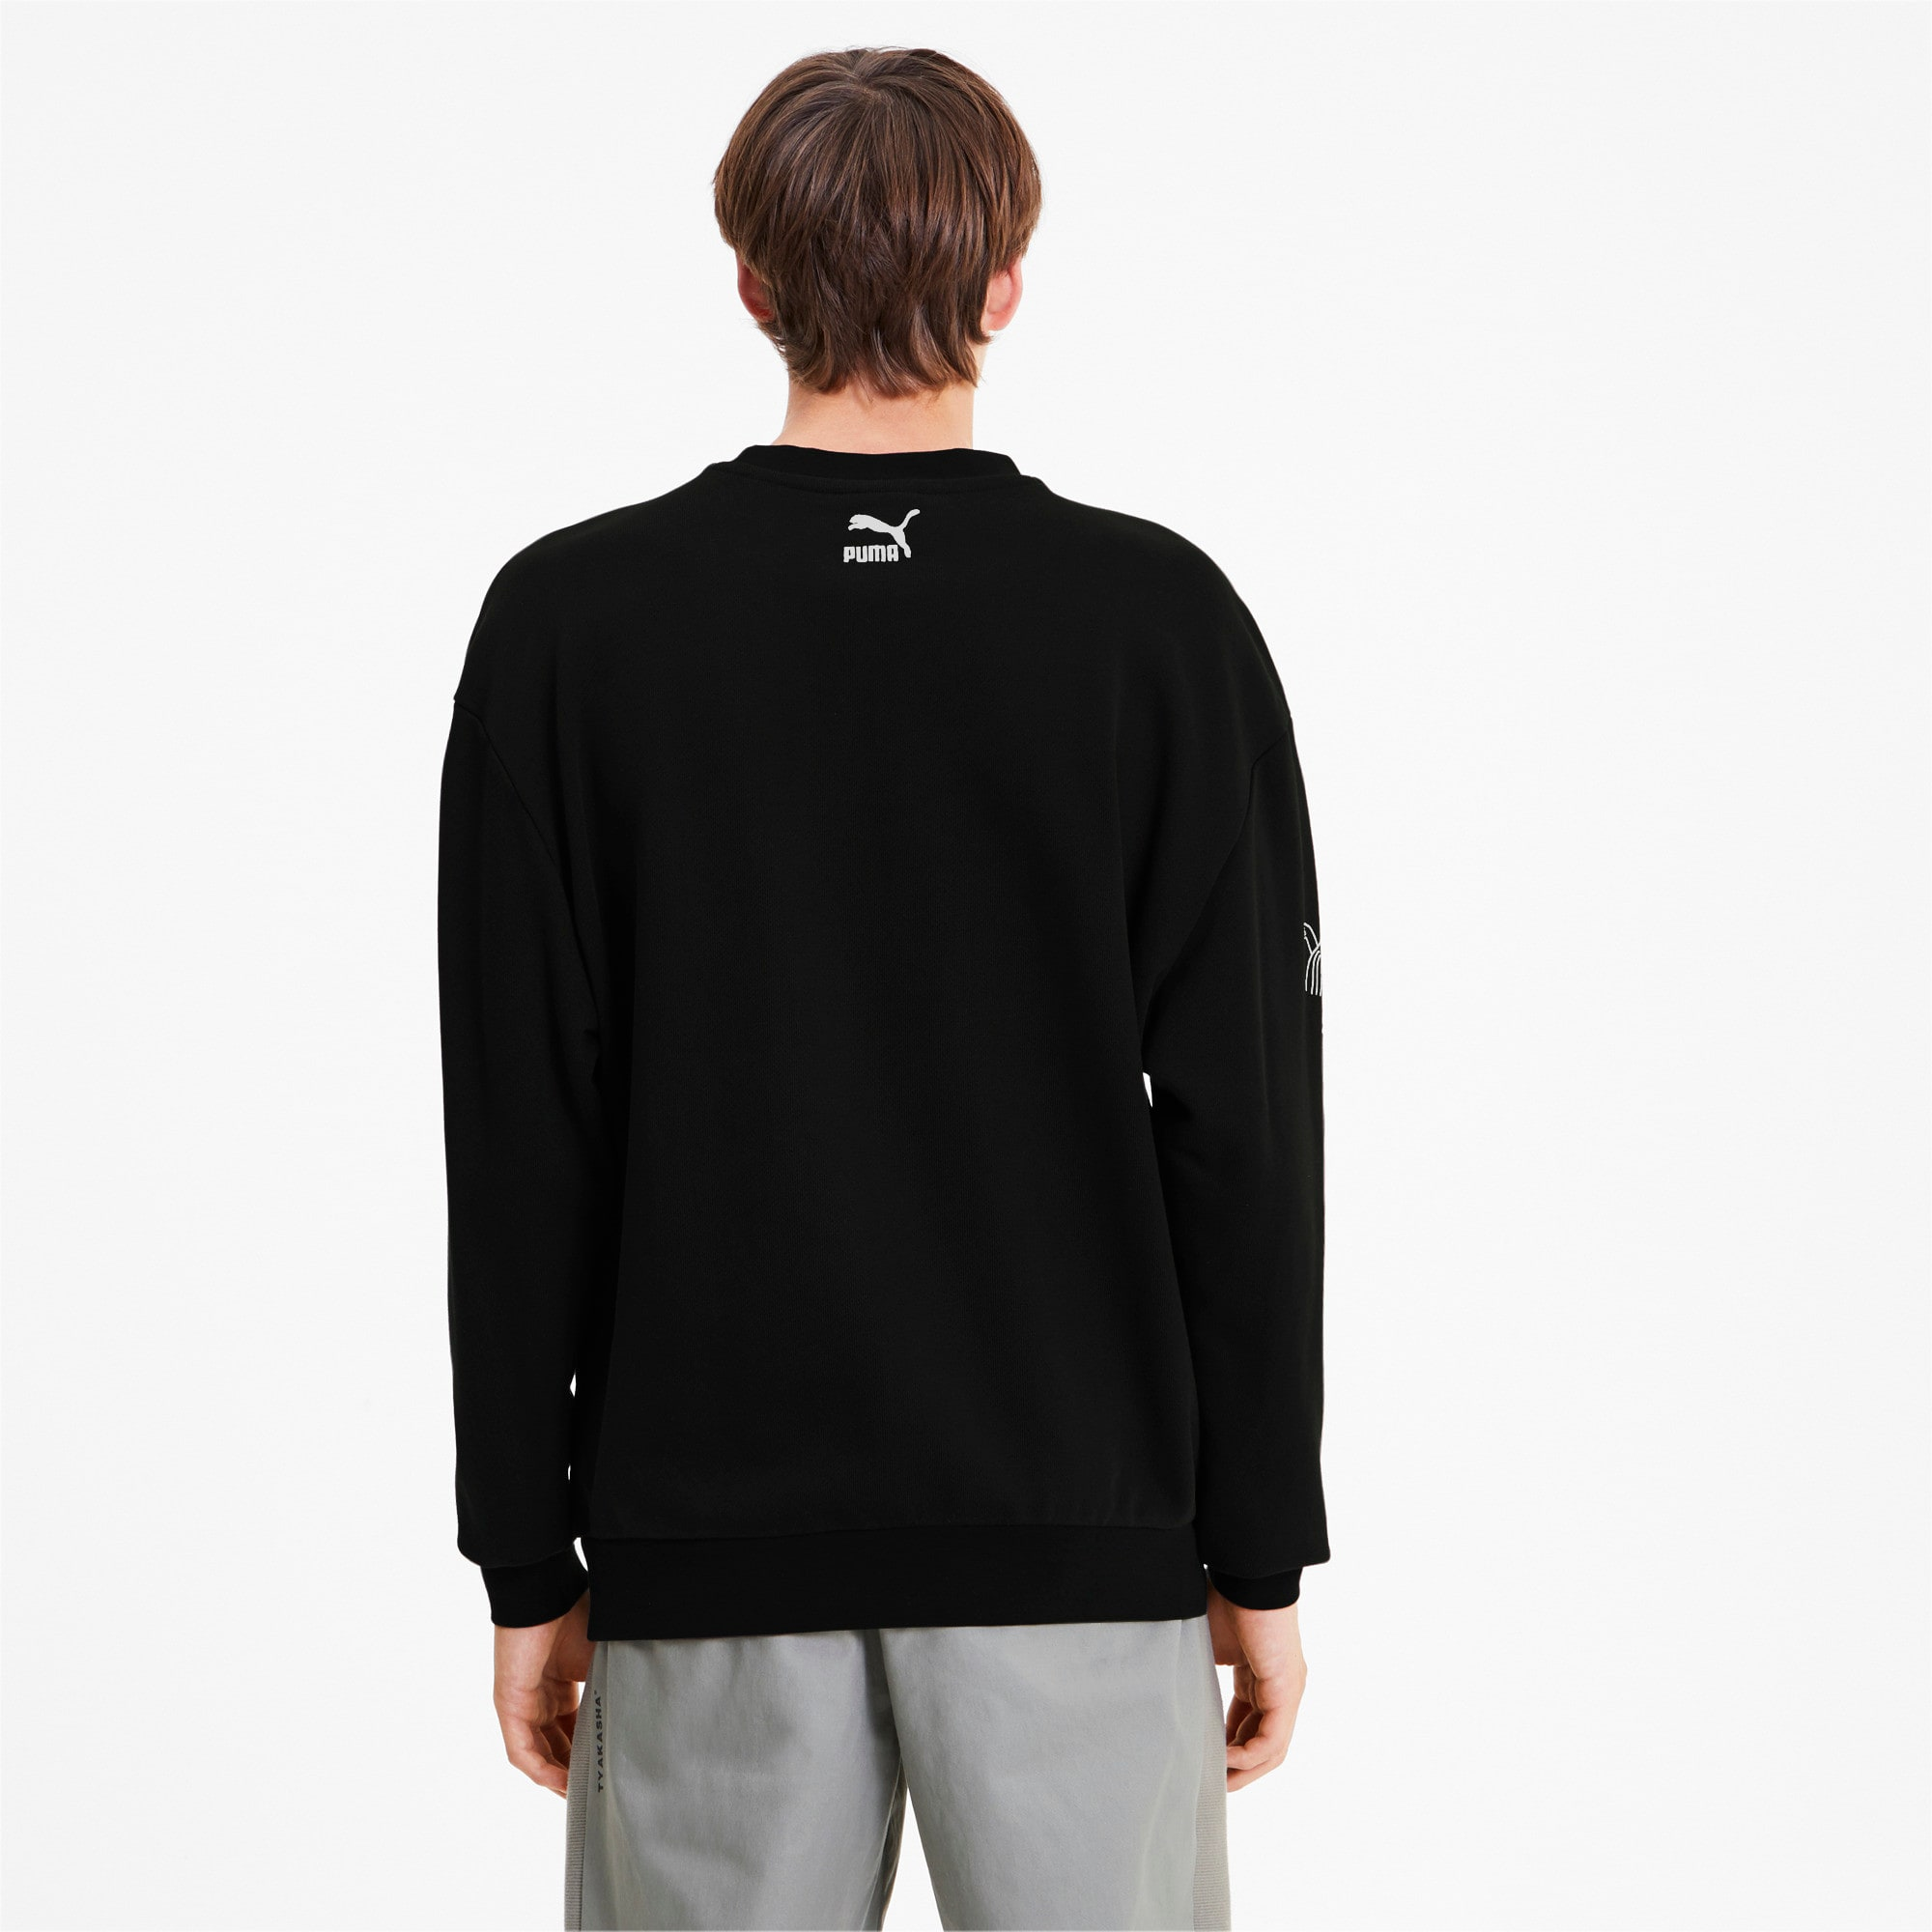 Thumbnail 3 of PUMA x TYAKASHA Crew Men's Sweater, Cotton Black, medium